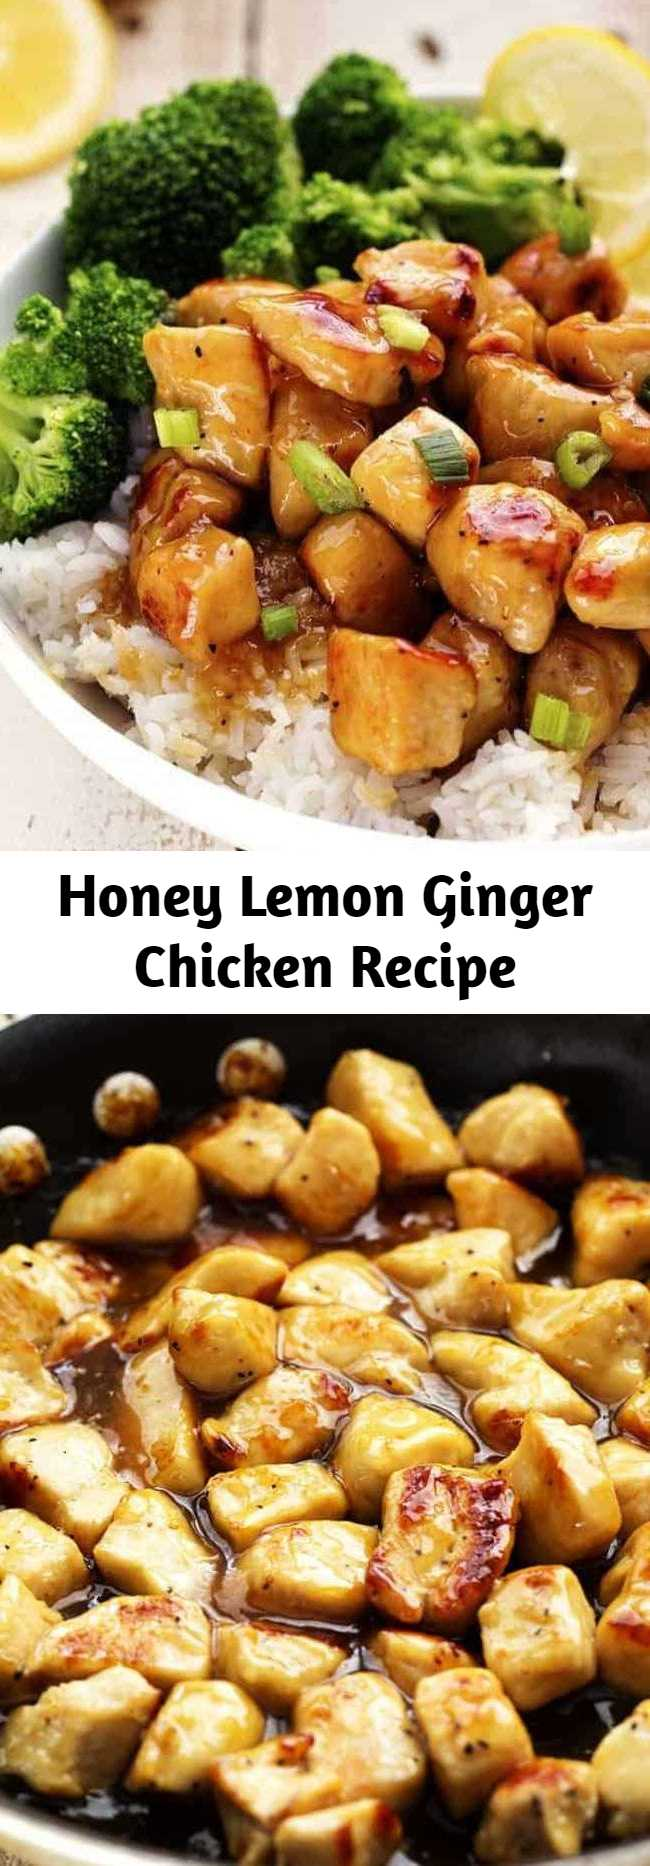 Honey Lemon Ginger Chicken Recipe - A light and delicious meal that is full of amazing honey lemon ginger flavor that the family will love!